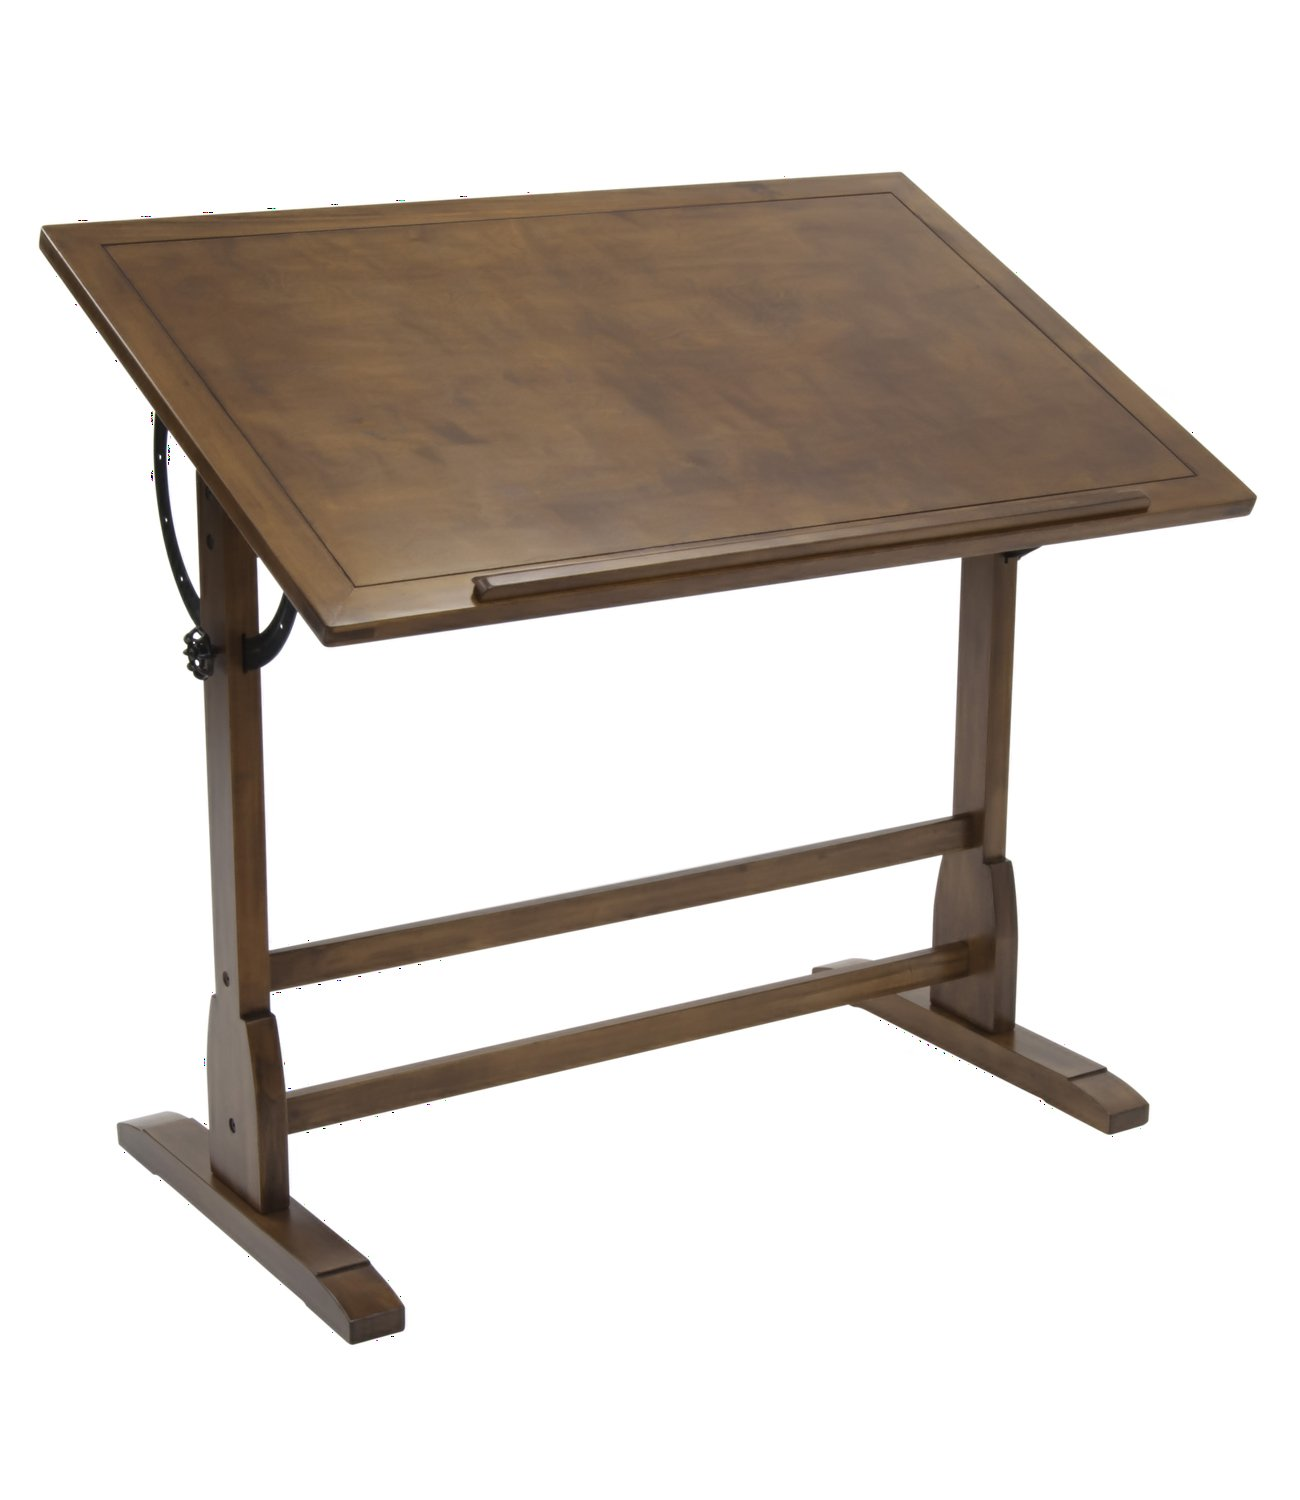 Offex Elegant Distressed Wood Vintage Drafting Table Rustic Oak 42'' x 30'' by Offex